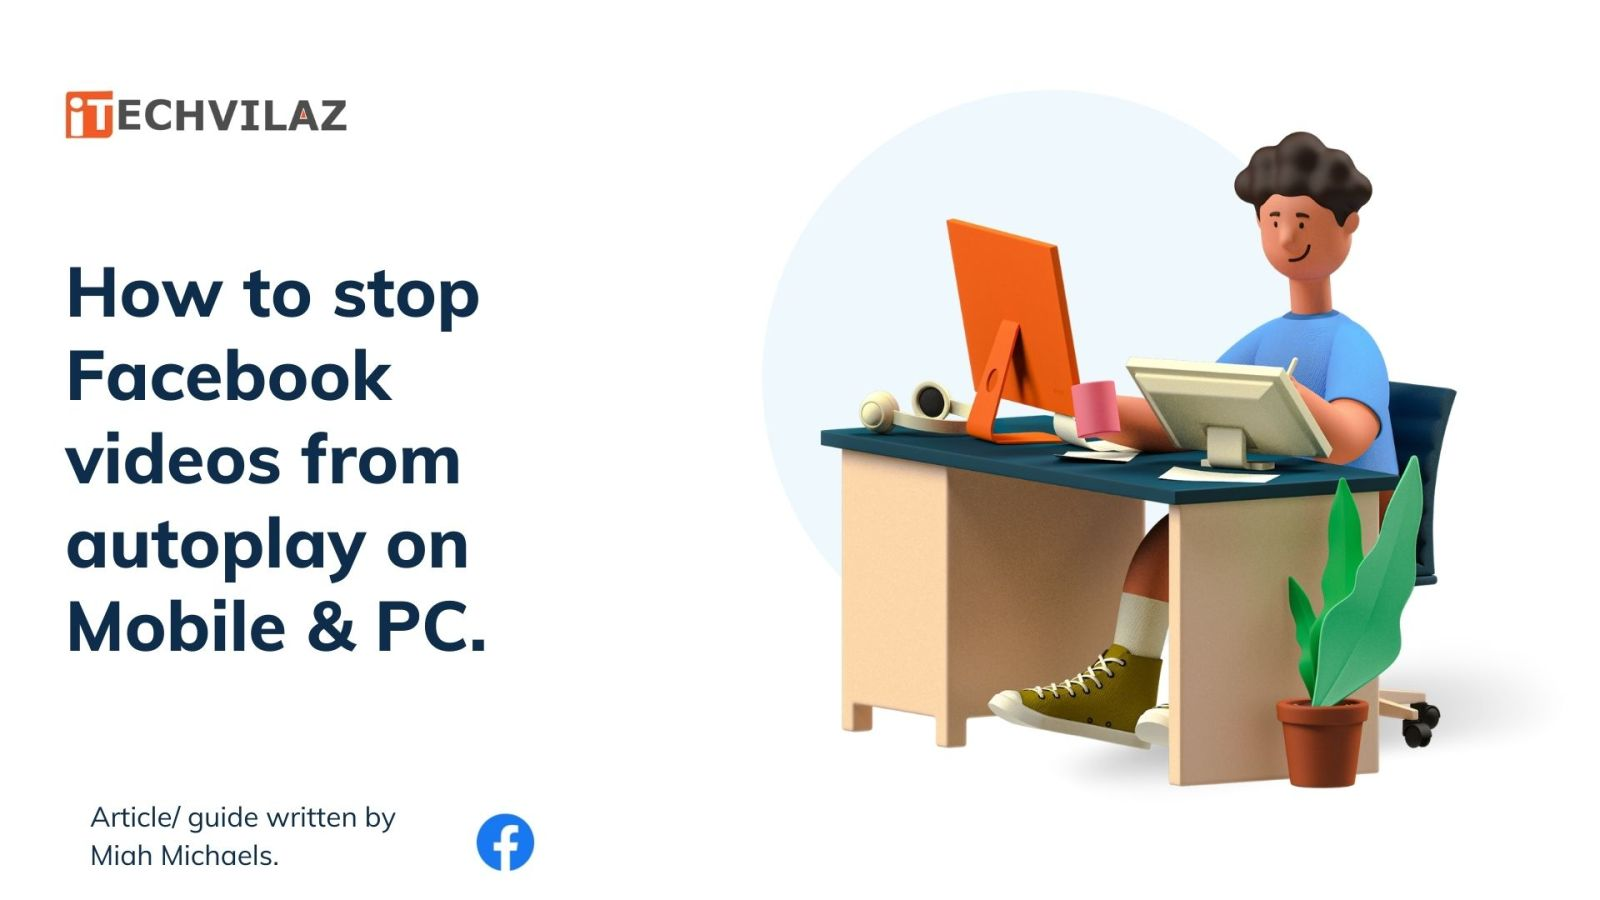 how to stop Facebook videos from autoplay